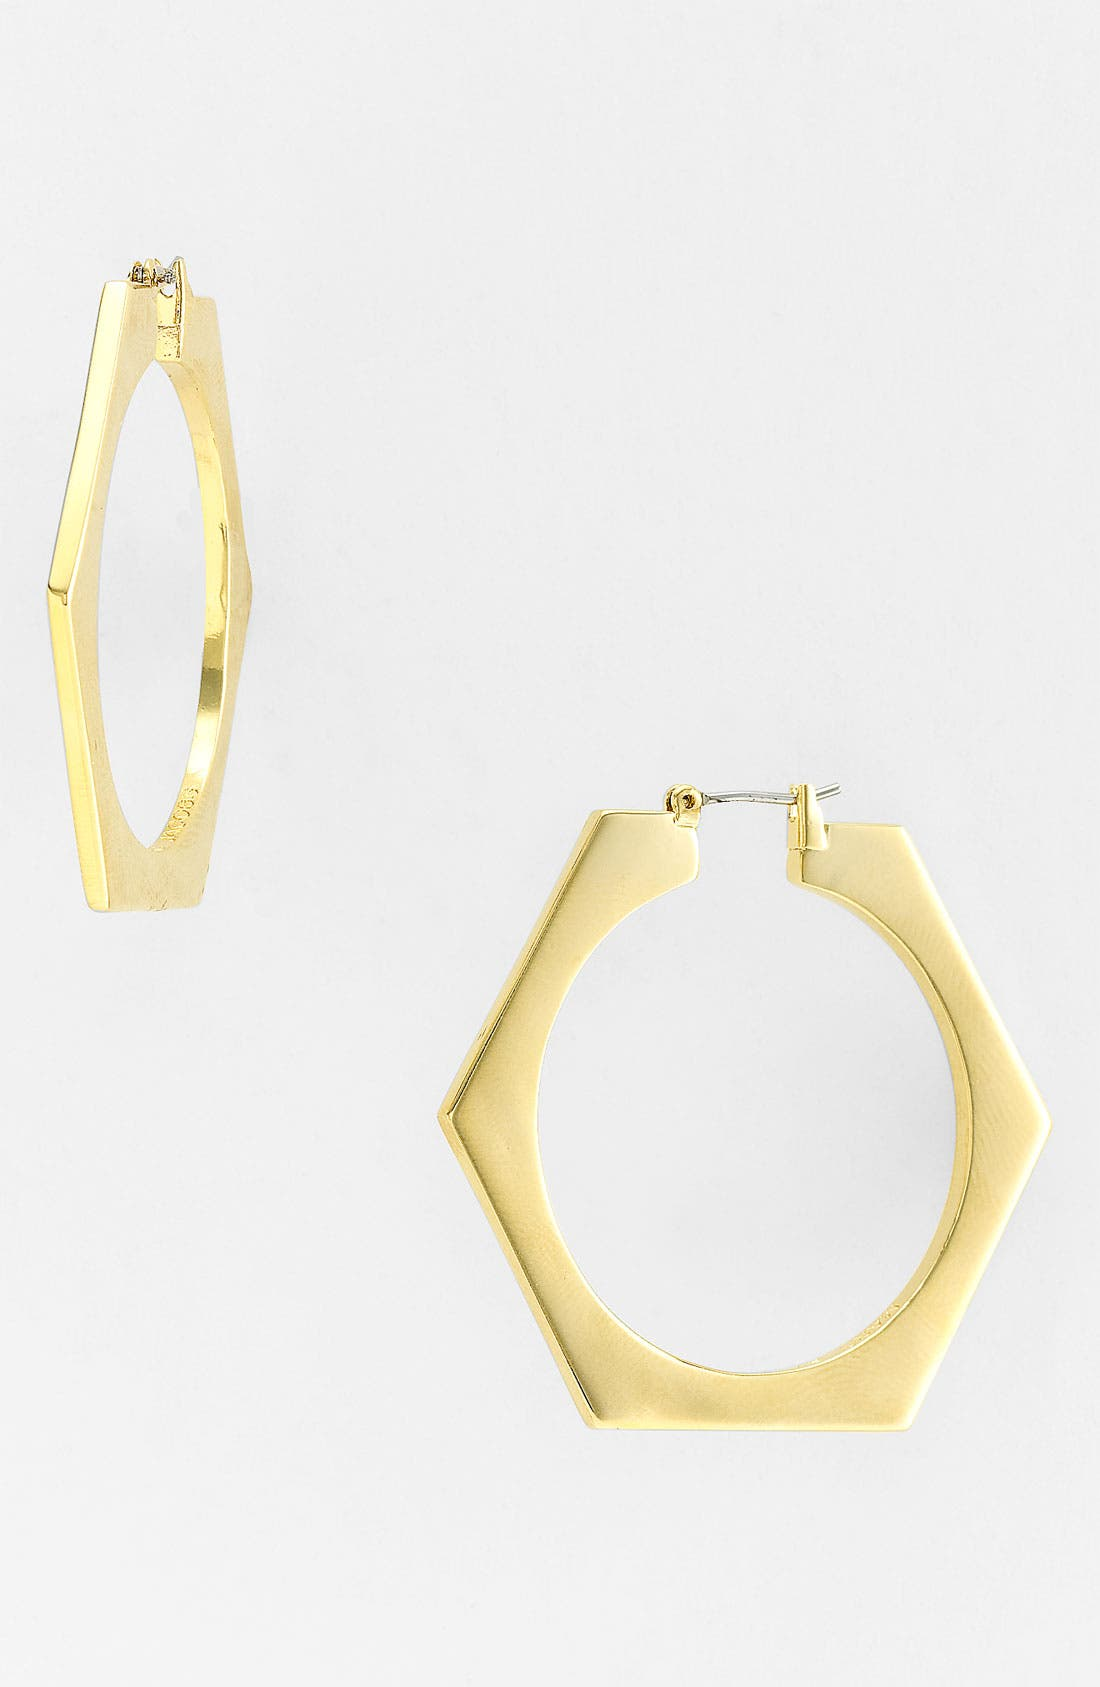 Main Image - MARC BY MARC JACOBS 'Bolts - Slice' Large Geometric Hoop Earrings